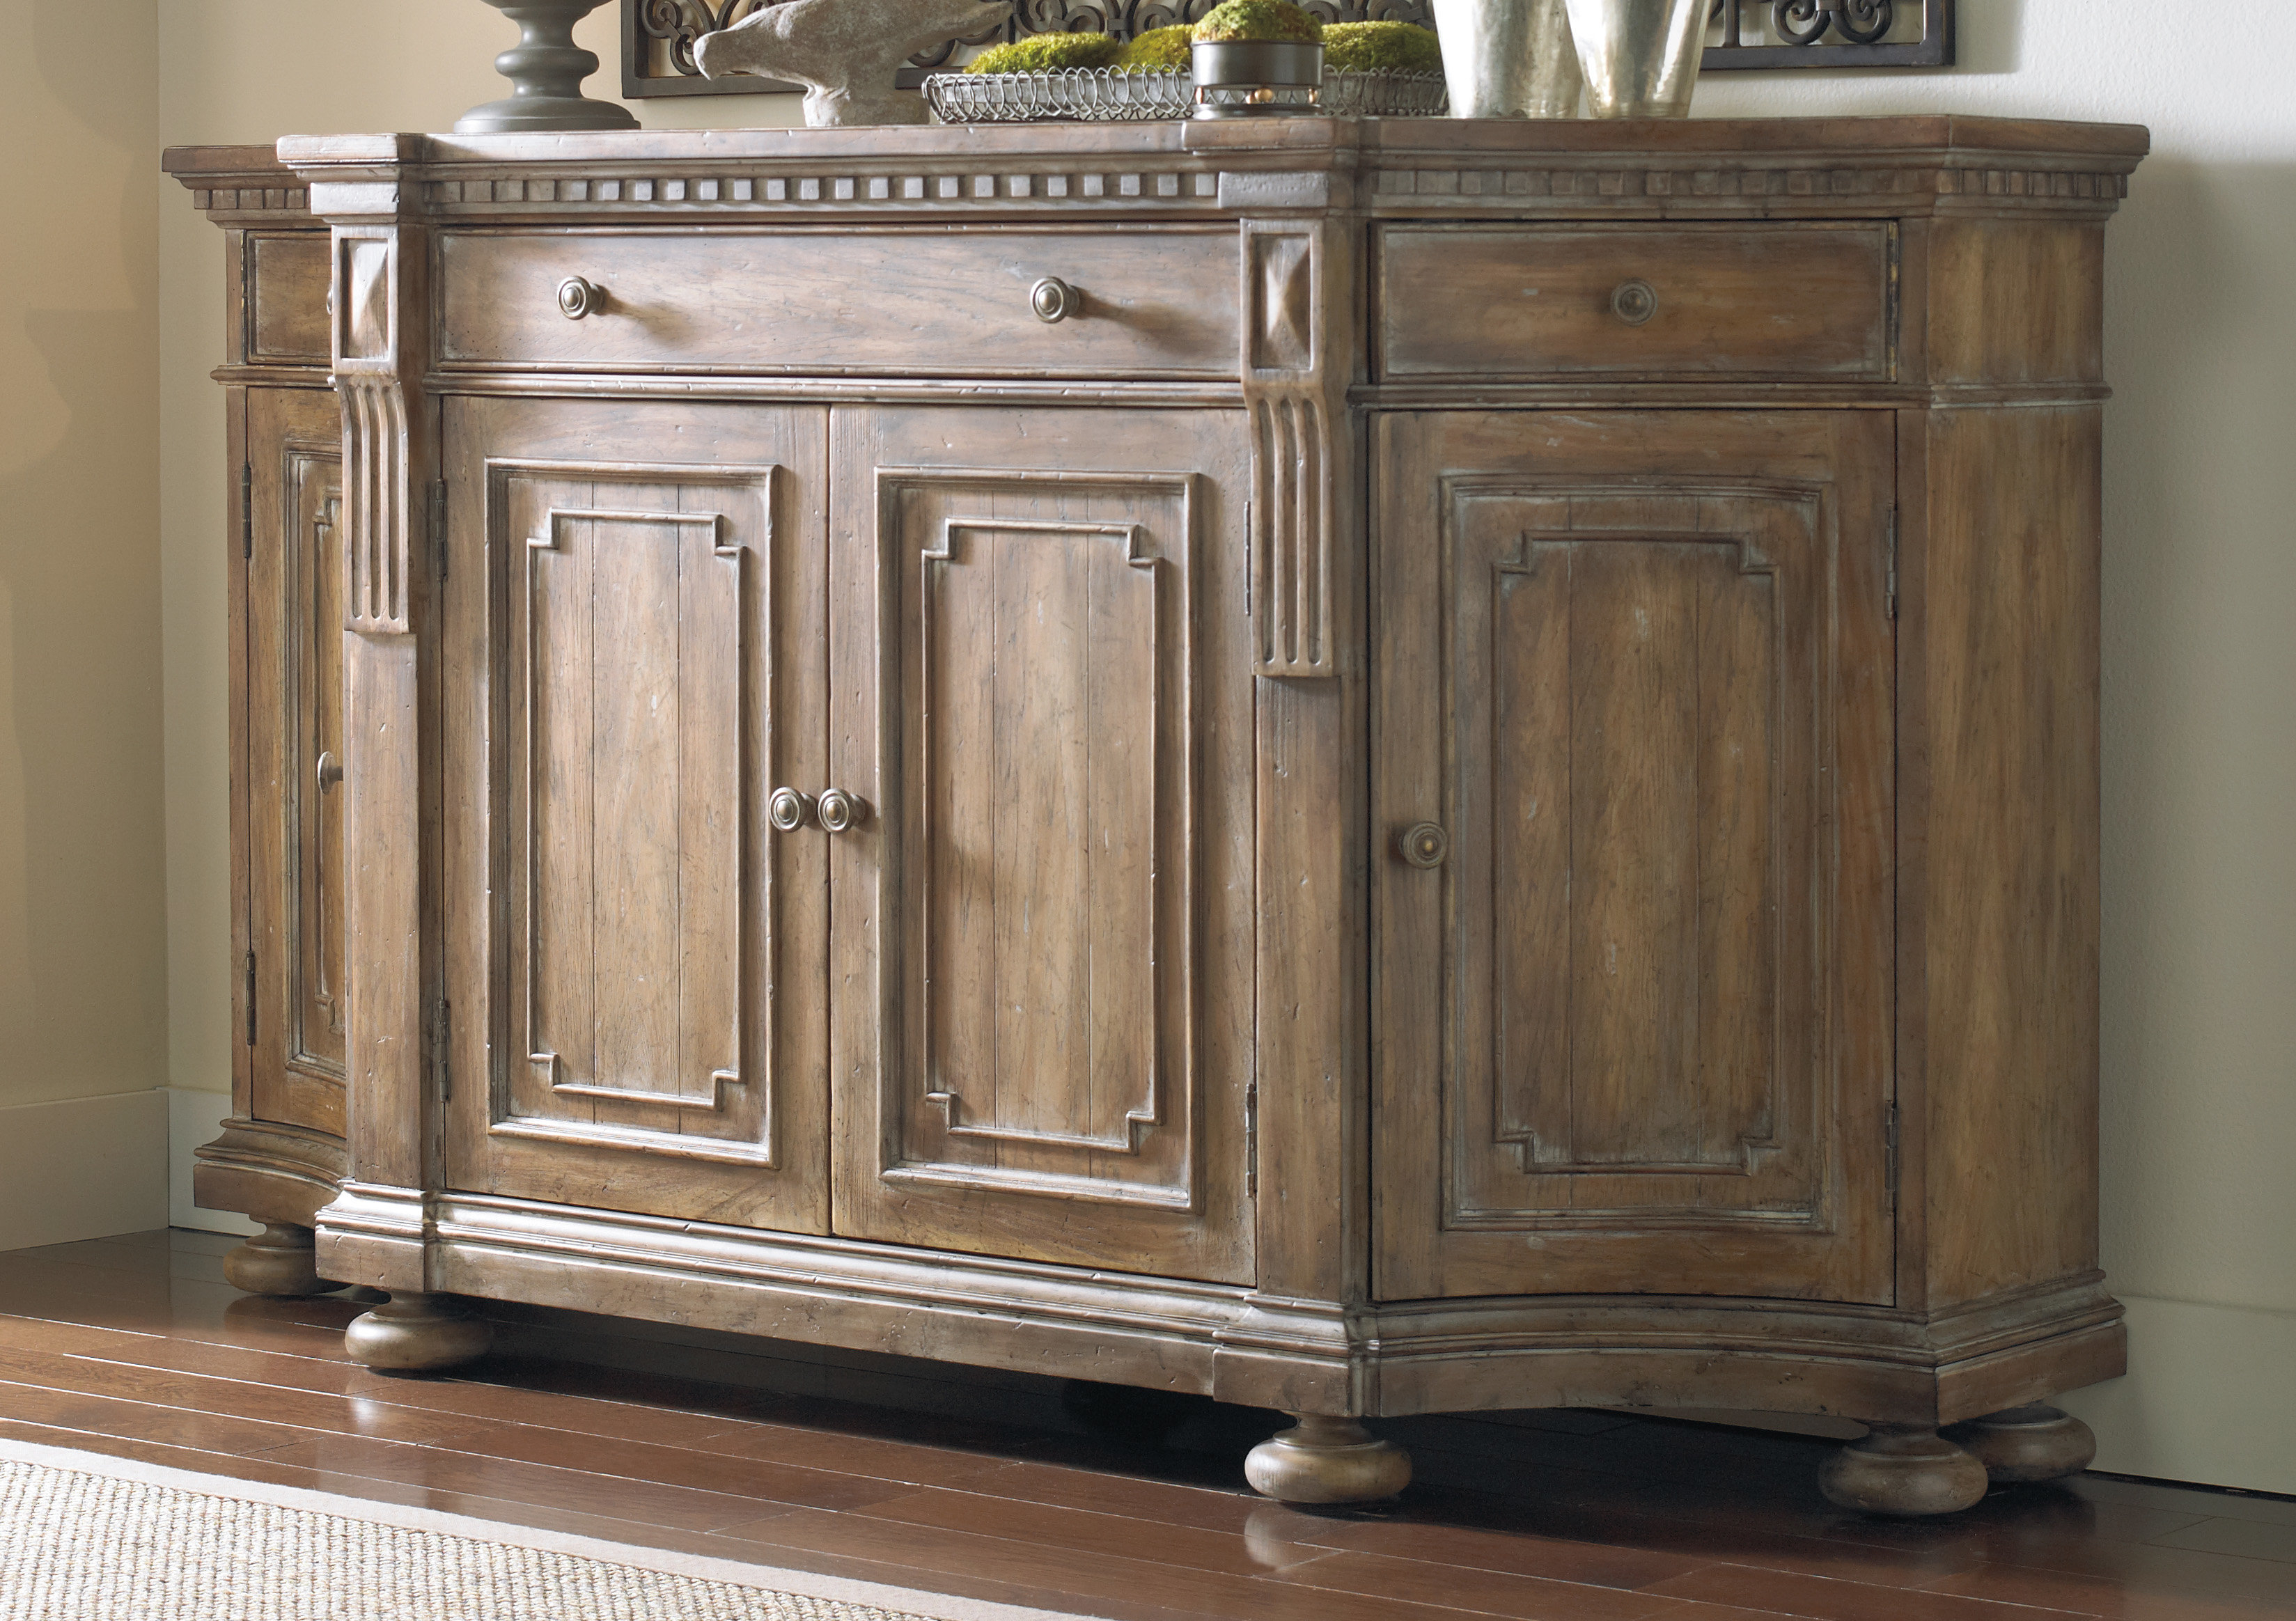 Hooker Furniture Gowins Shaped Sideboard in Ilyan Traditional Wood Sideboards (Image 14 of 30)